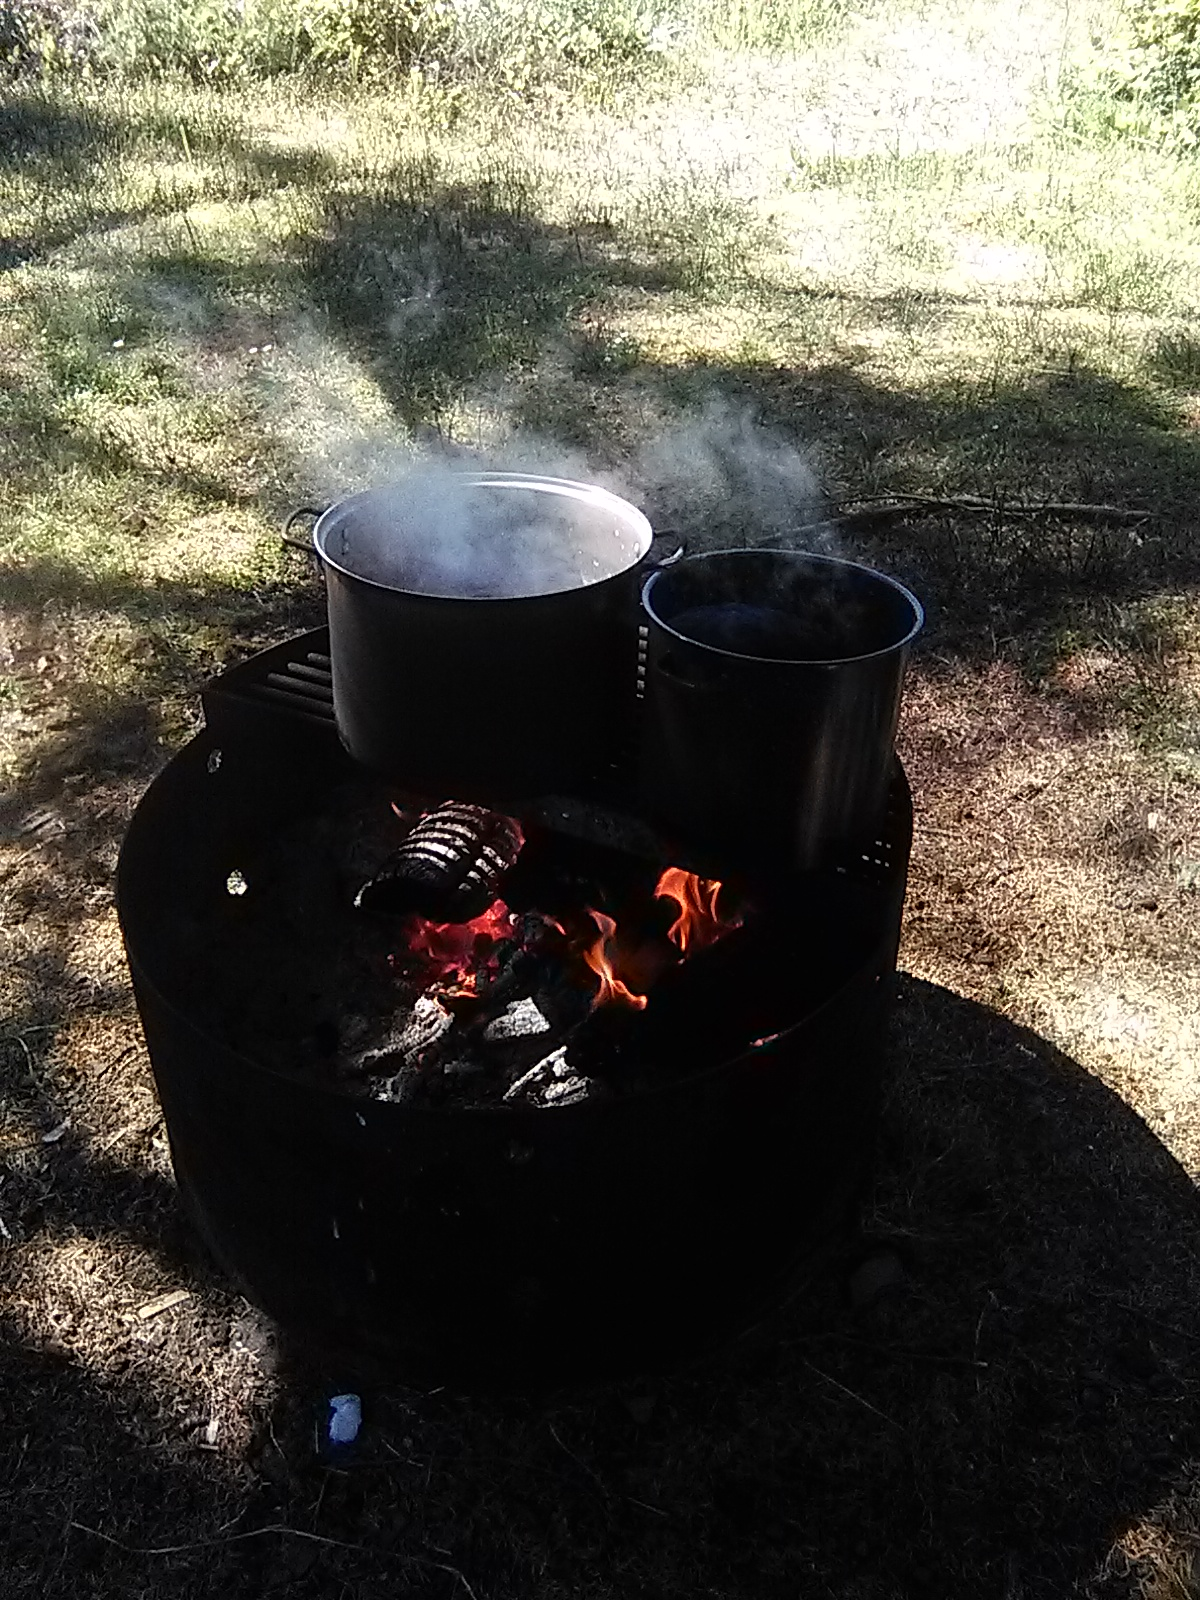 Two pots of ocean water sit on a grate over the campfire